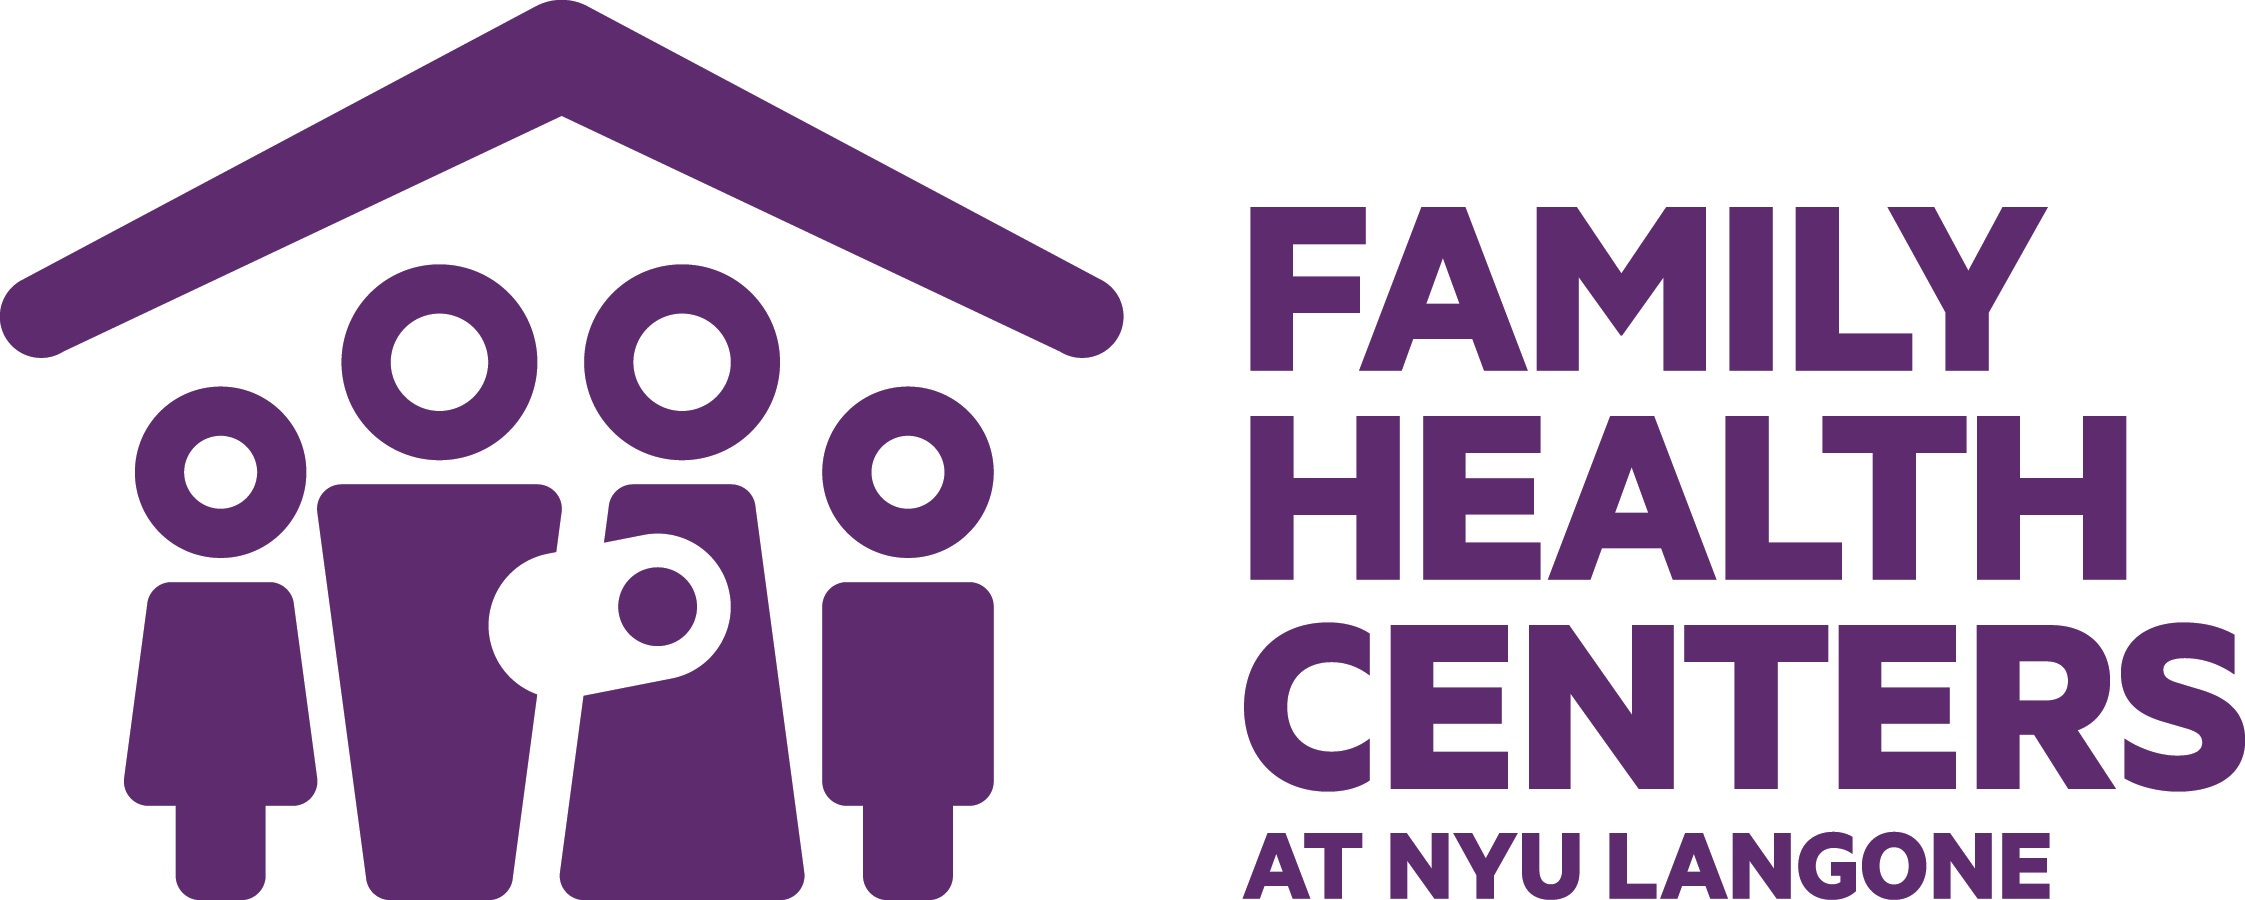 Careers at Family Health Centers | NYU Langone Health